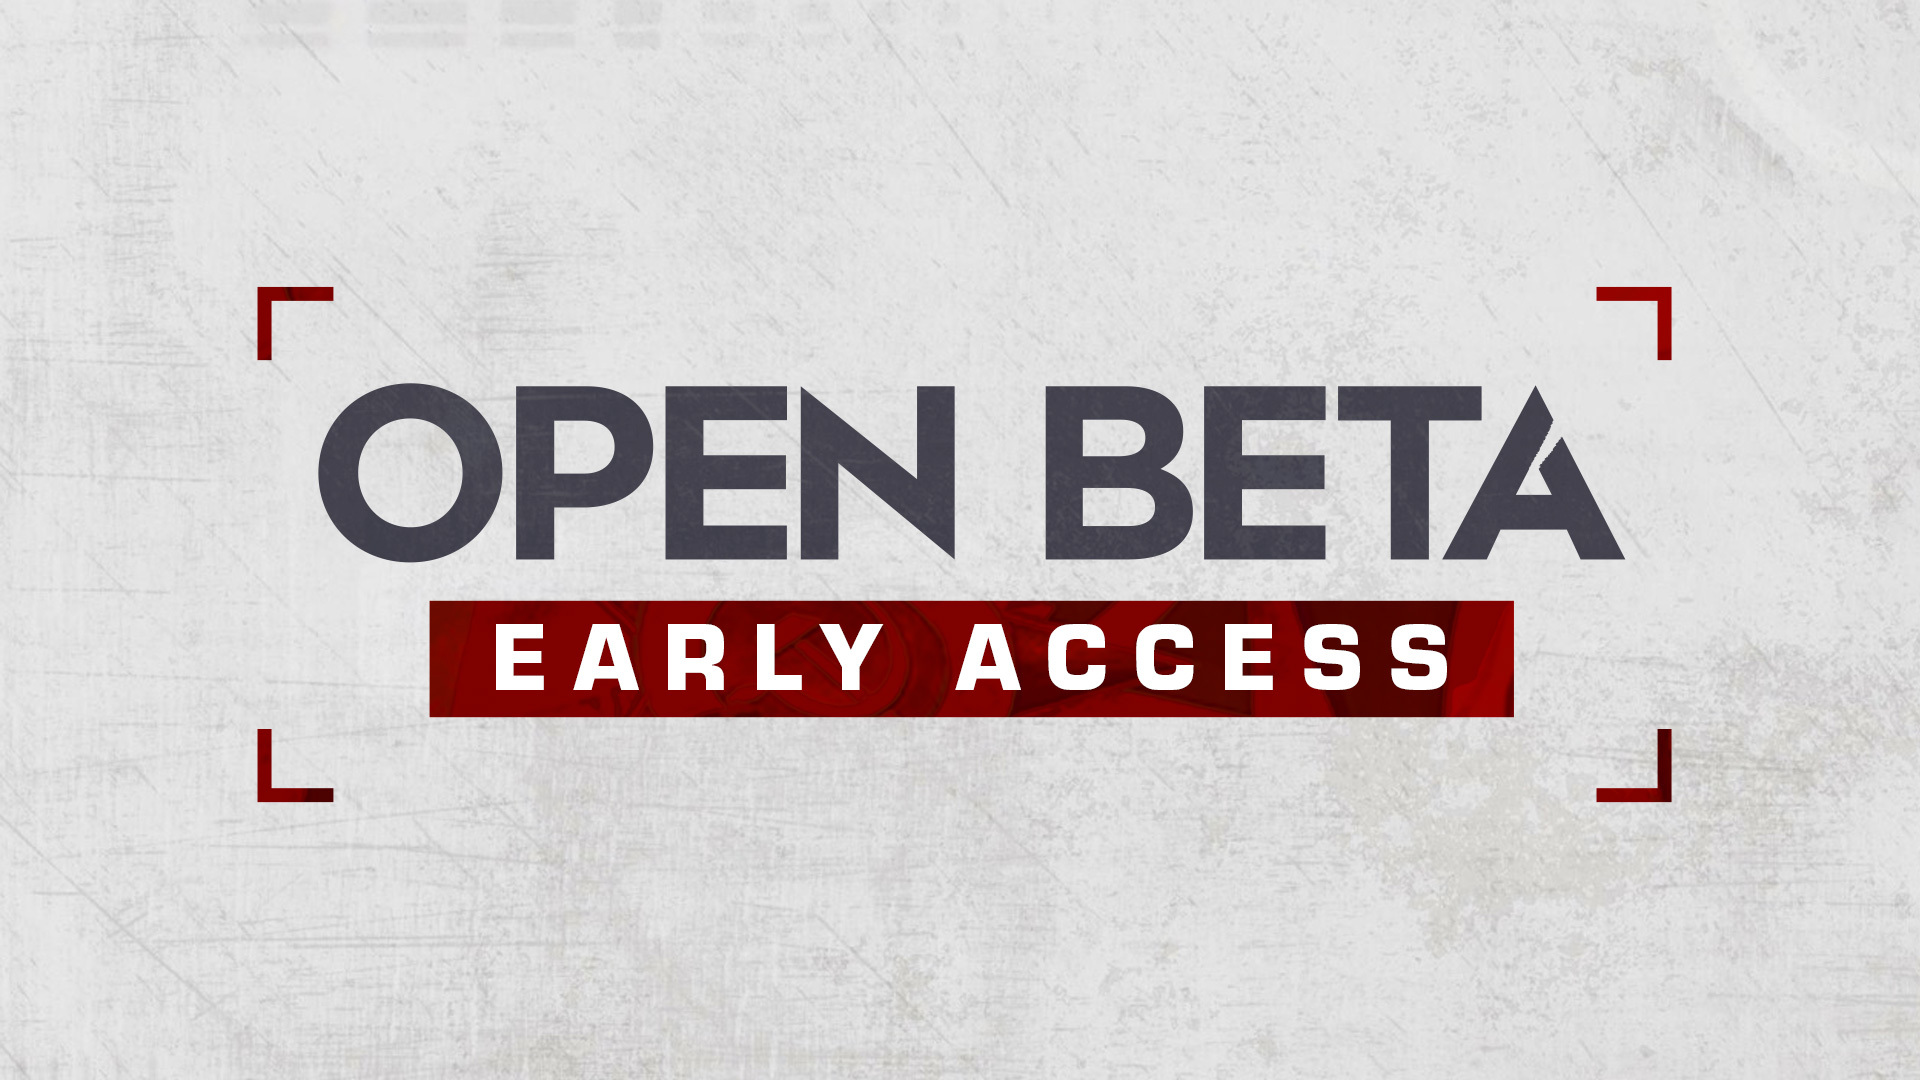 Call Of Duty Black Ops Cold War Open Beta Launch Date Possibly Leaked For Ps4 Players